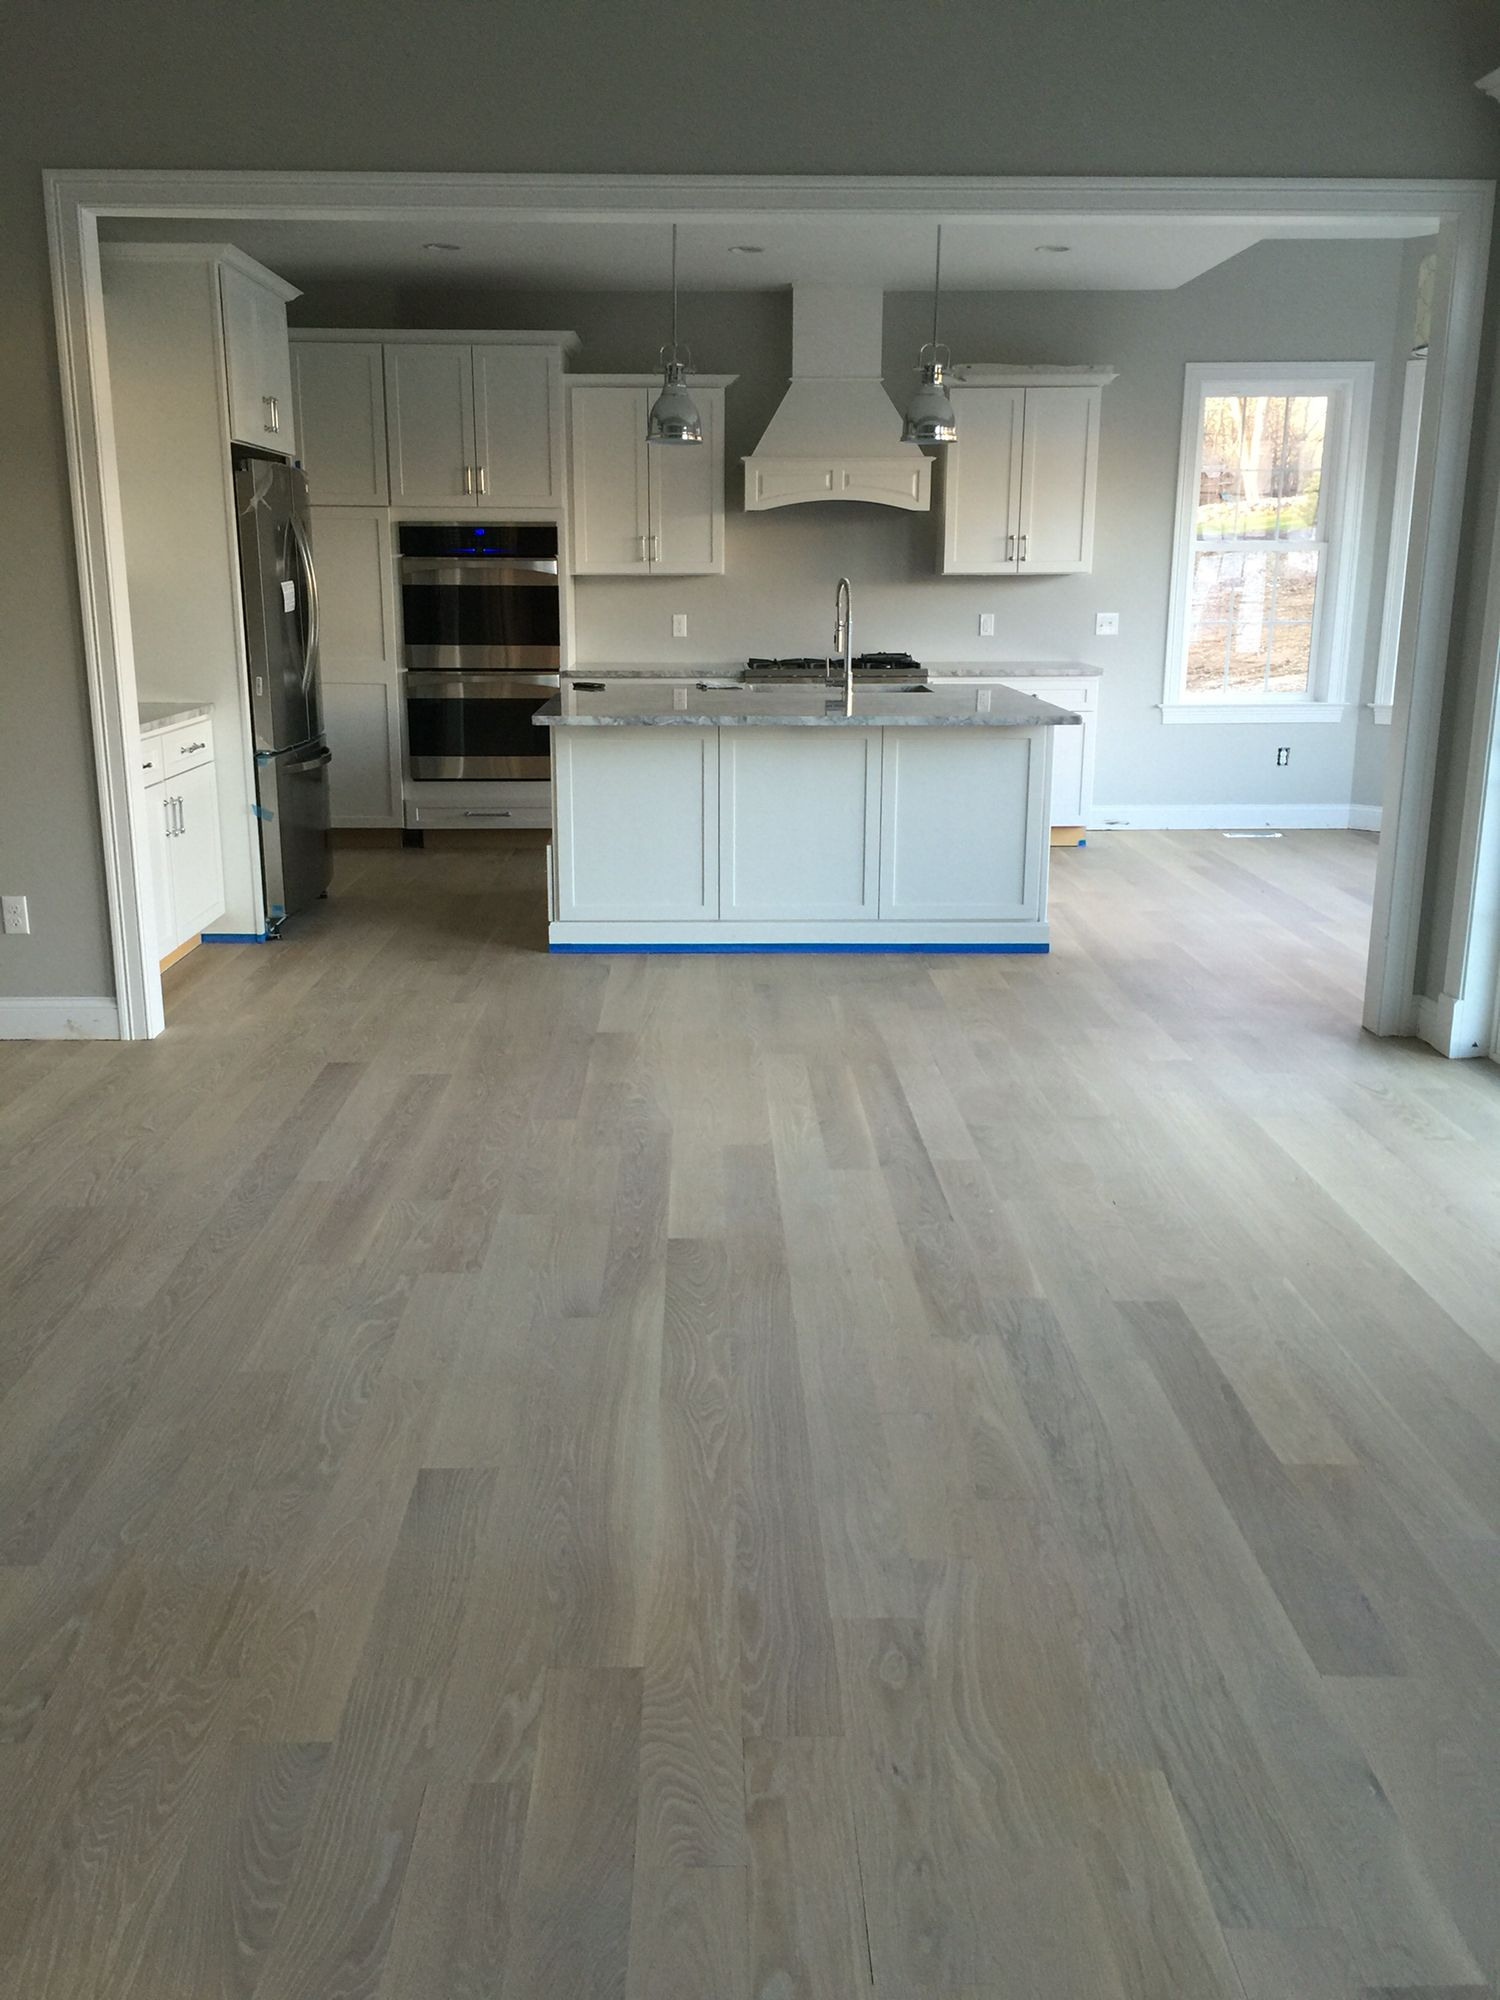 Rubio Monocoat Smoke Oil On 5 Inch Wide White Oak Planks Http Www Monocoat Us Precolor Easy Hardwood Floor Colors Wood Floors Wide Plank Flooring